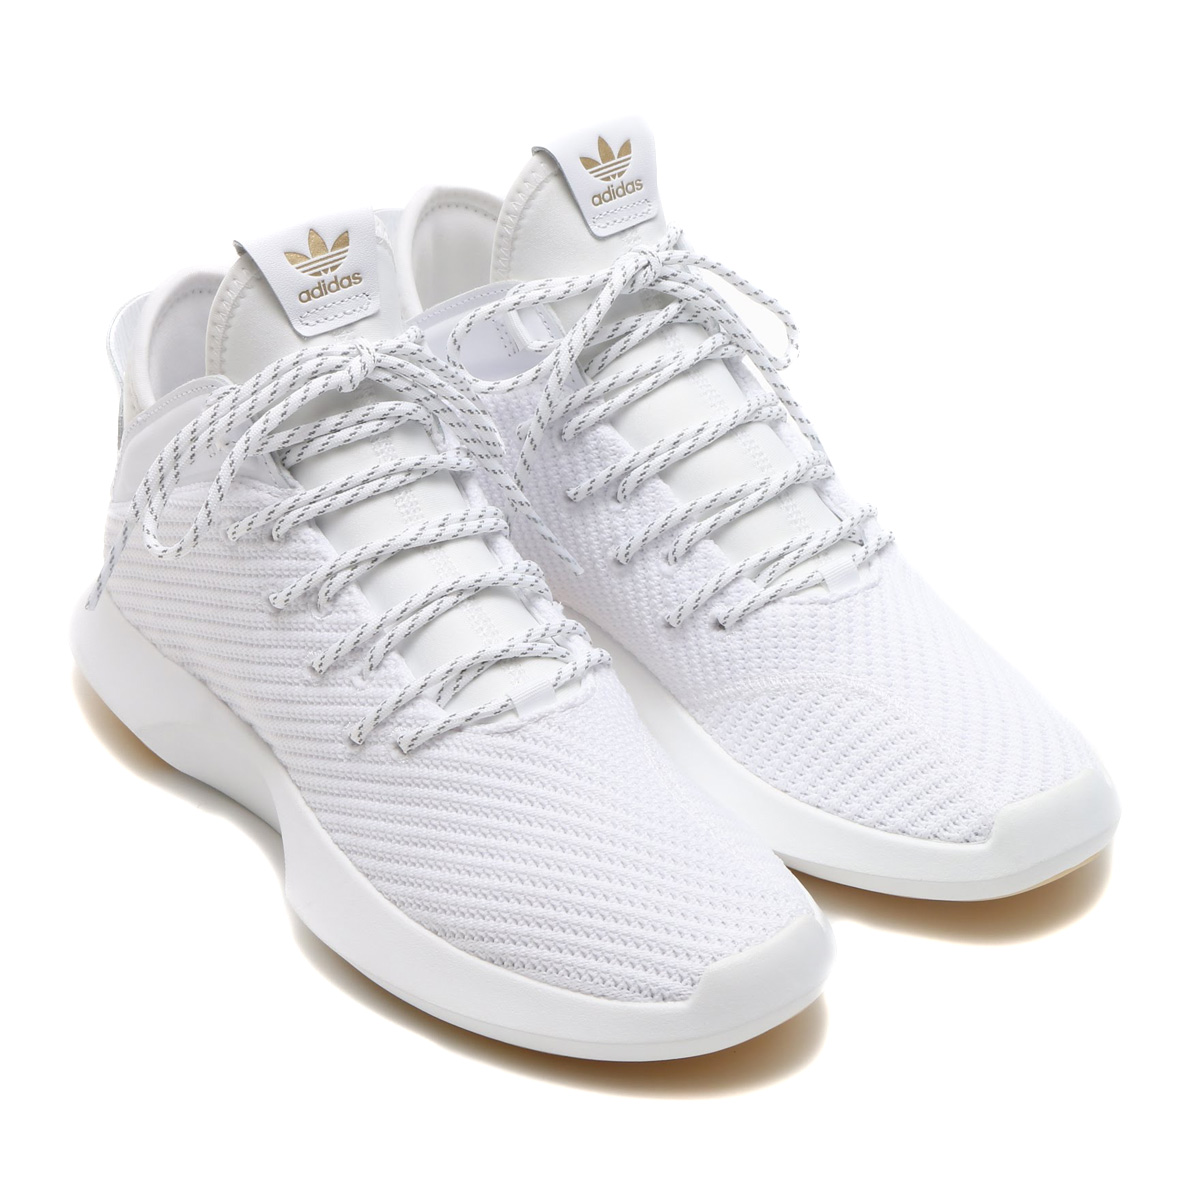 25601725fe1e adidas Originals CRAZY 1 ADV PK (Adidas originals crazy 1 ADV PK) (running  white   running white   goal domet) 18SP-S